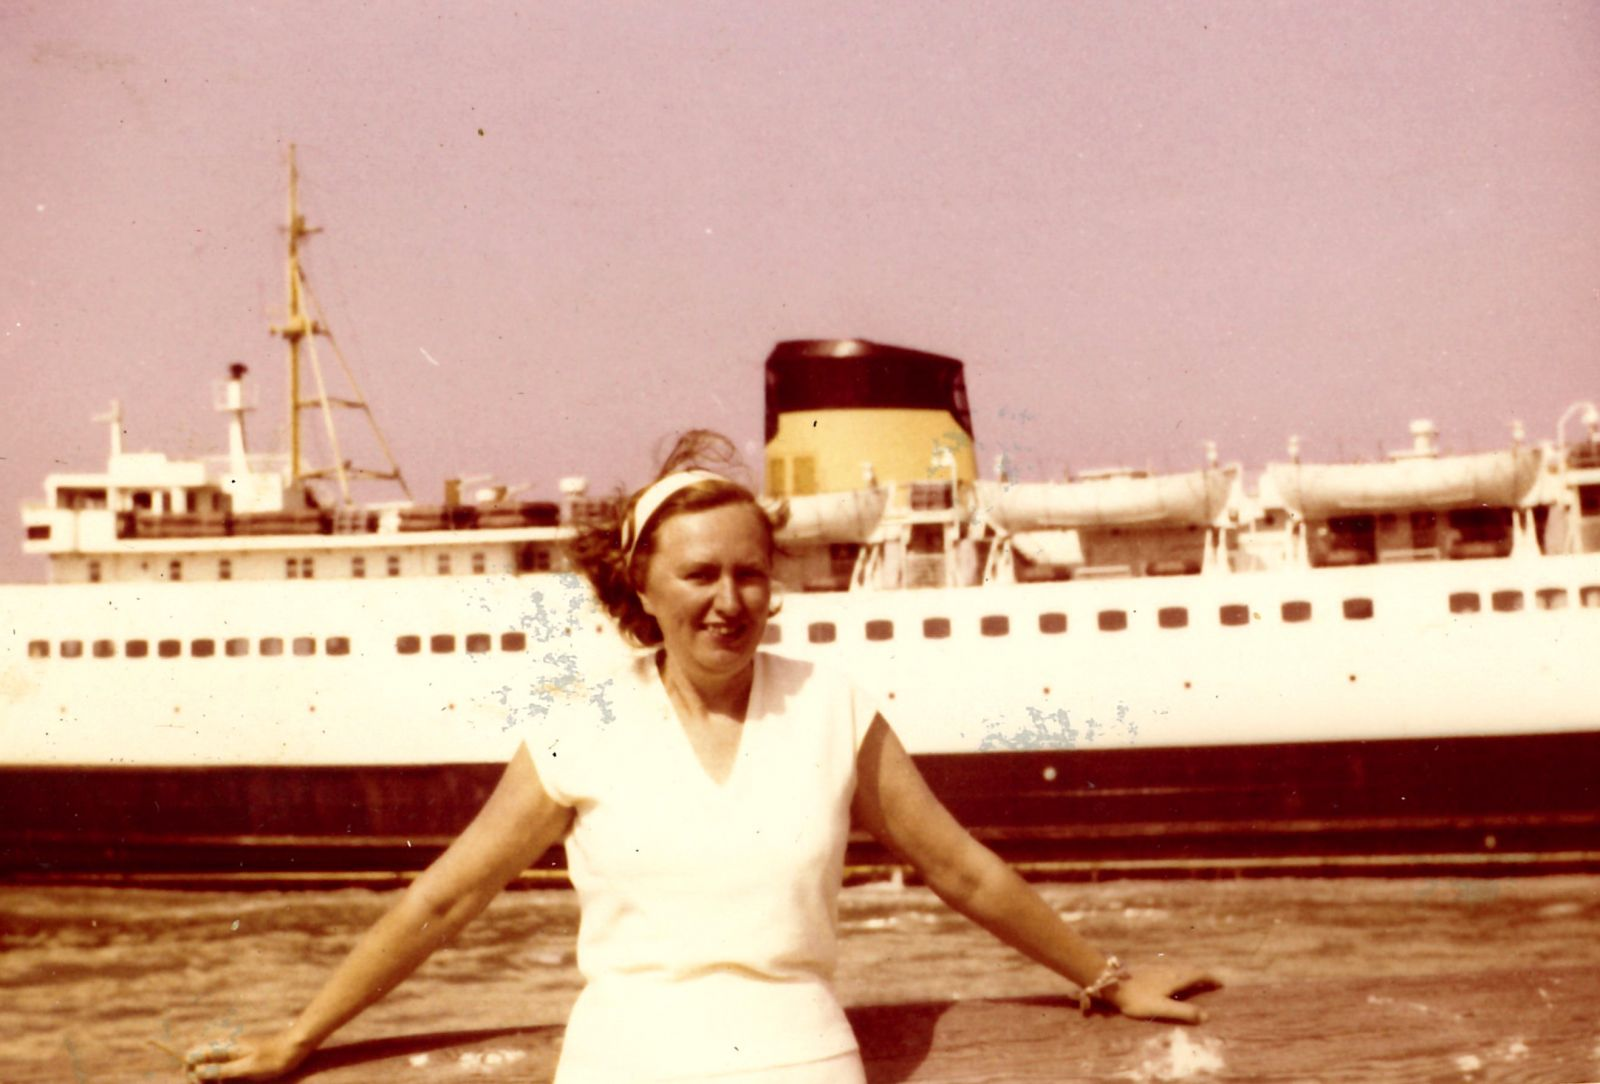 Josette Lavergne in the harbour of Ostend.